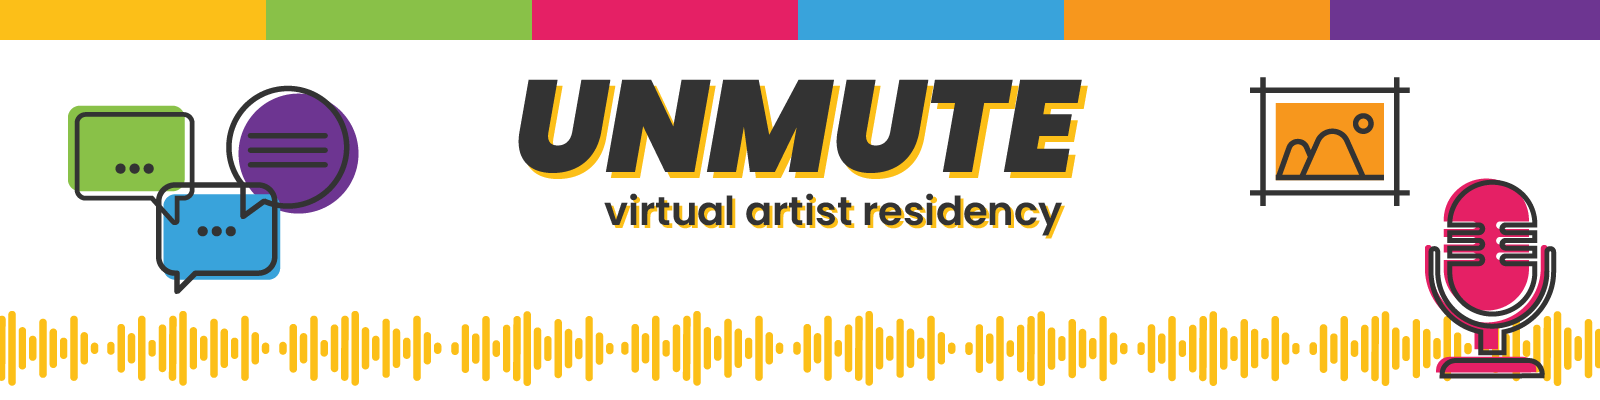 Unmute Virtual Artist Residency Call for Artists Banner